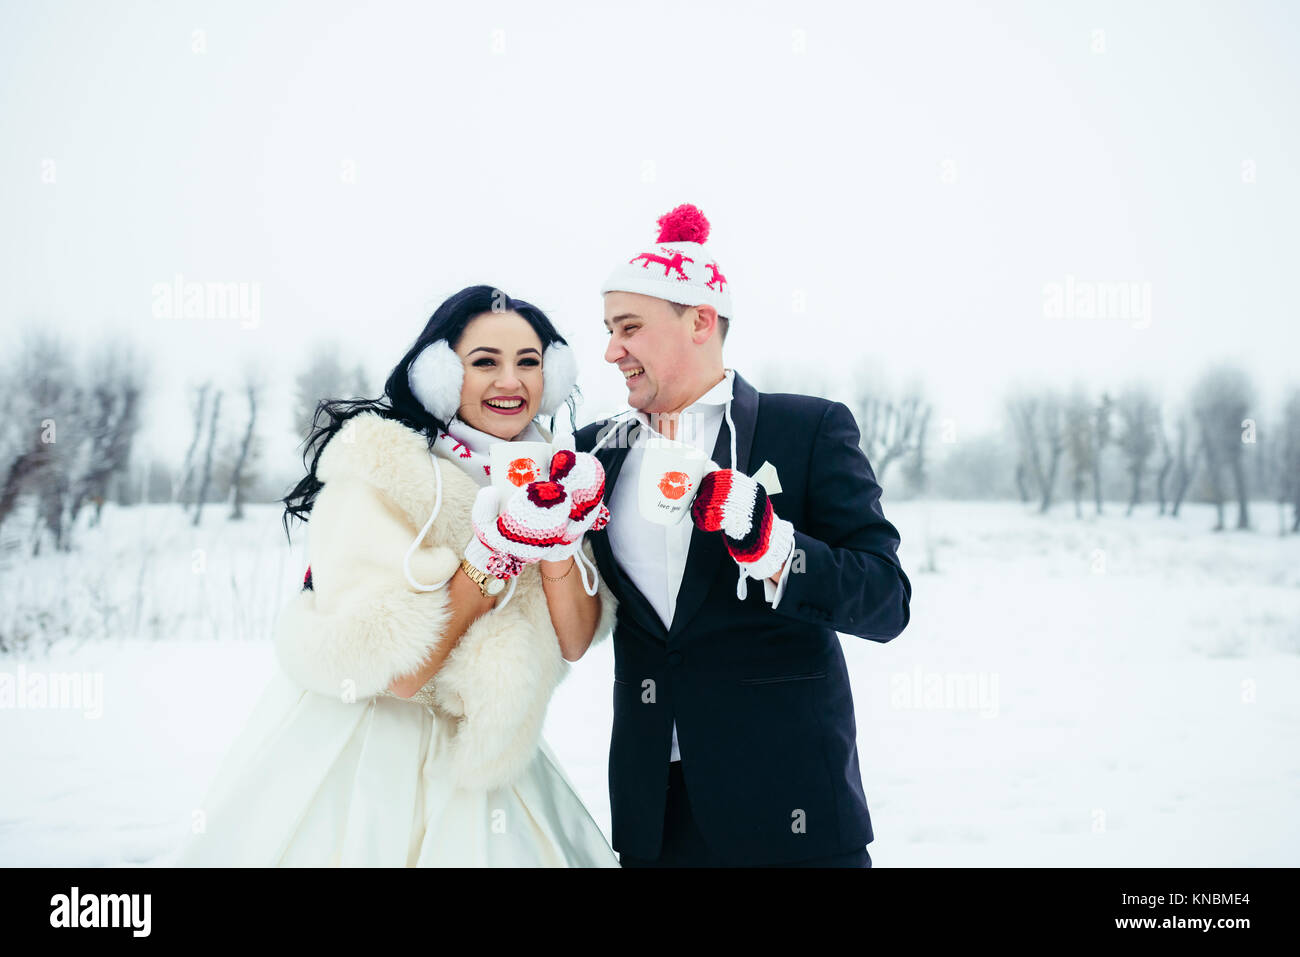 Close Up Portrait Newlyweds Couple Funny Hats Holding Cups Cofee Tea Winter Snowy Wedding Happy Gloves Fun. - Stock Image